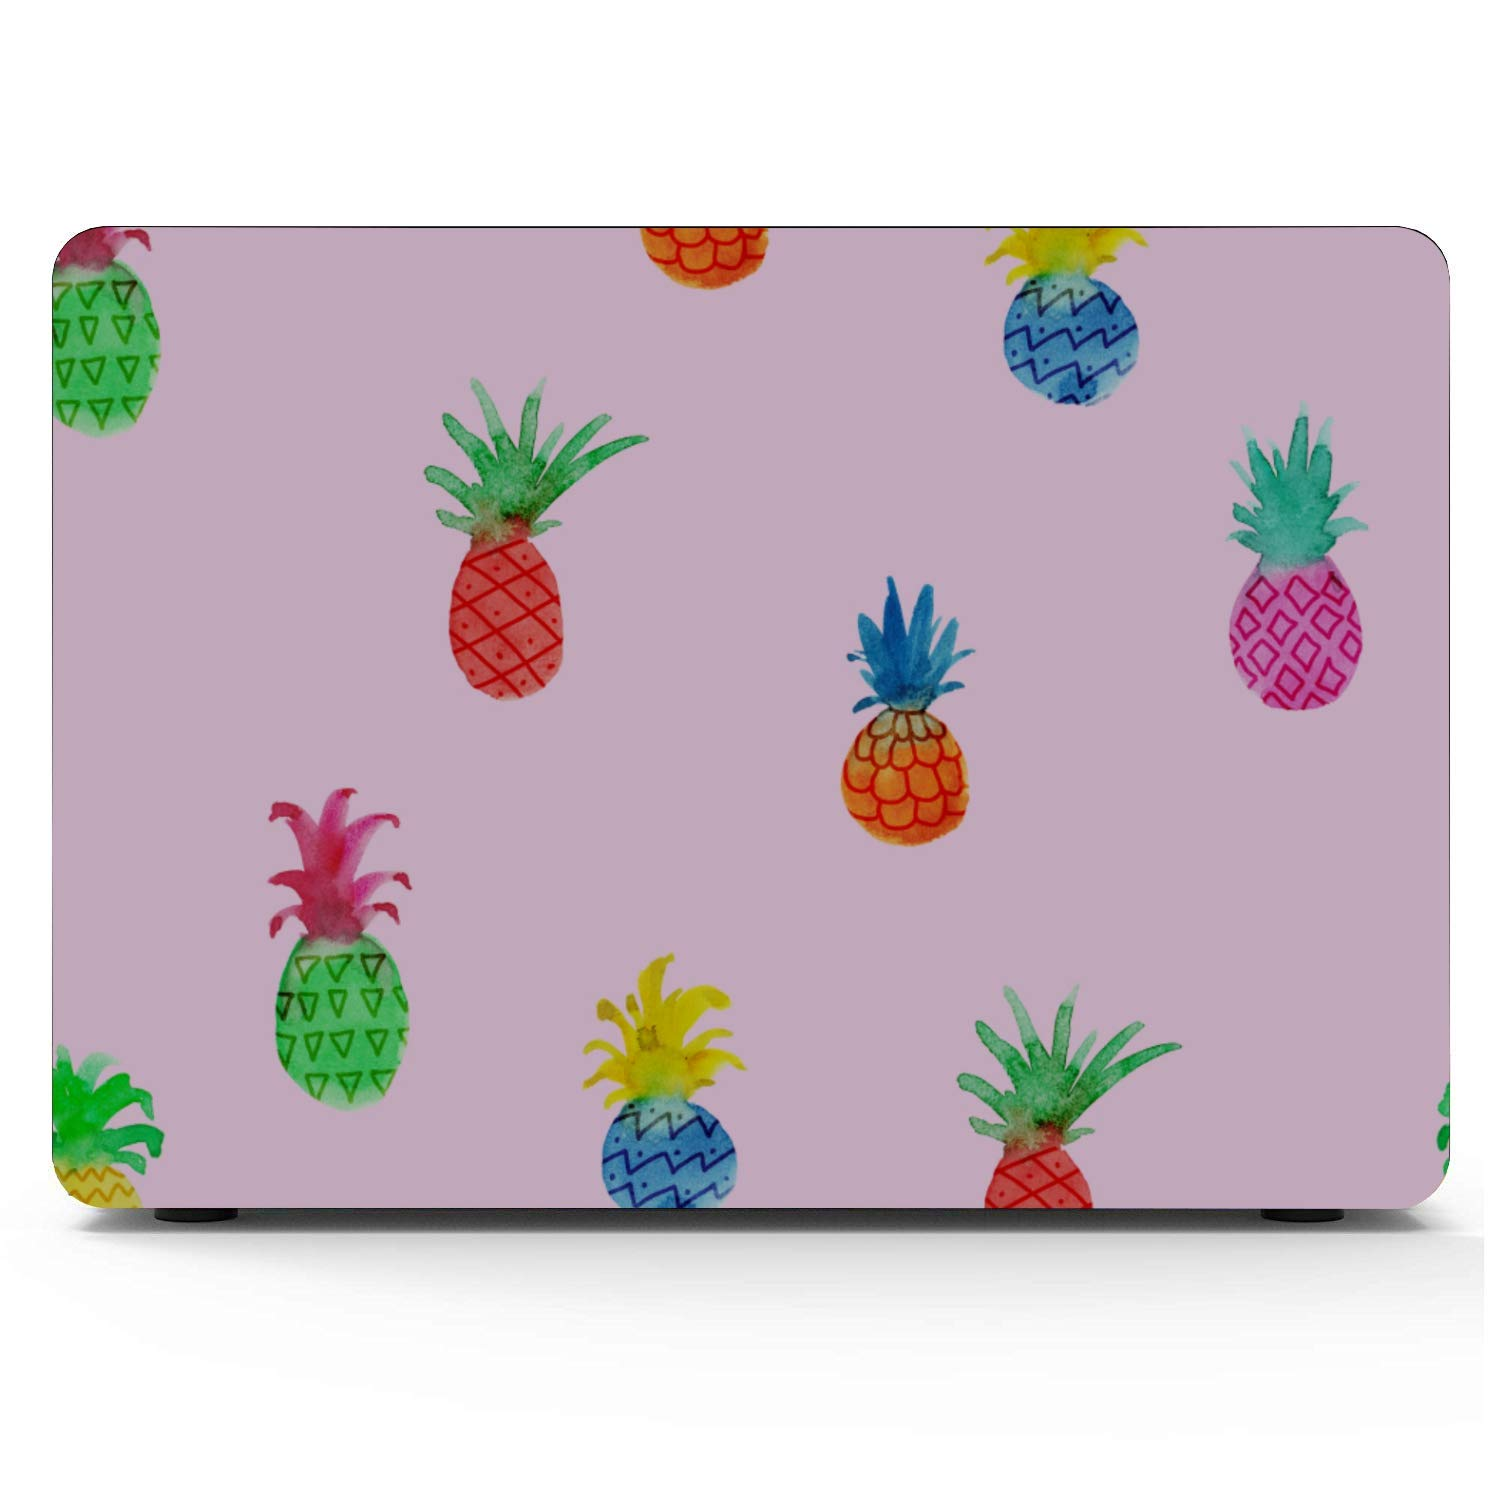 MacBook Cover 15 Inch Summer Fashion Sweet Fruit Pineapple Plastic Hard Shell Compatible Mac Air 11 Pro 13 15 MacBook 15 Cover Protection for MacBook 2016-2019 Version